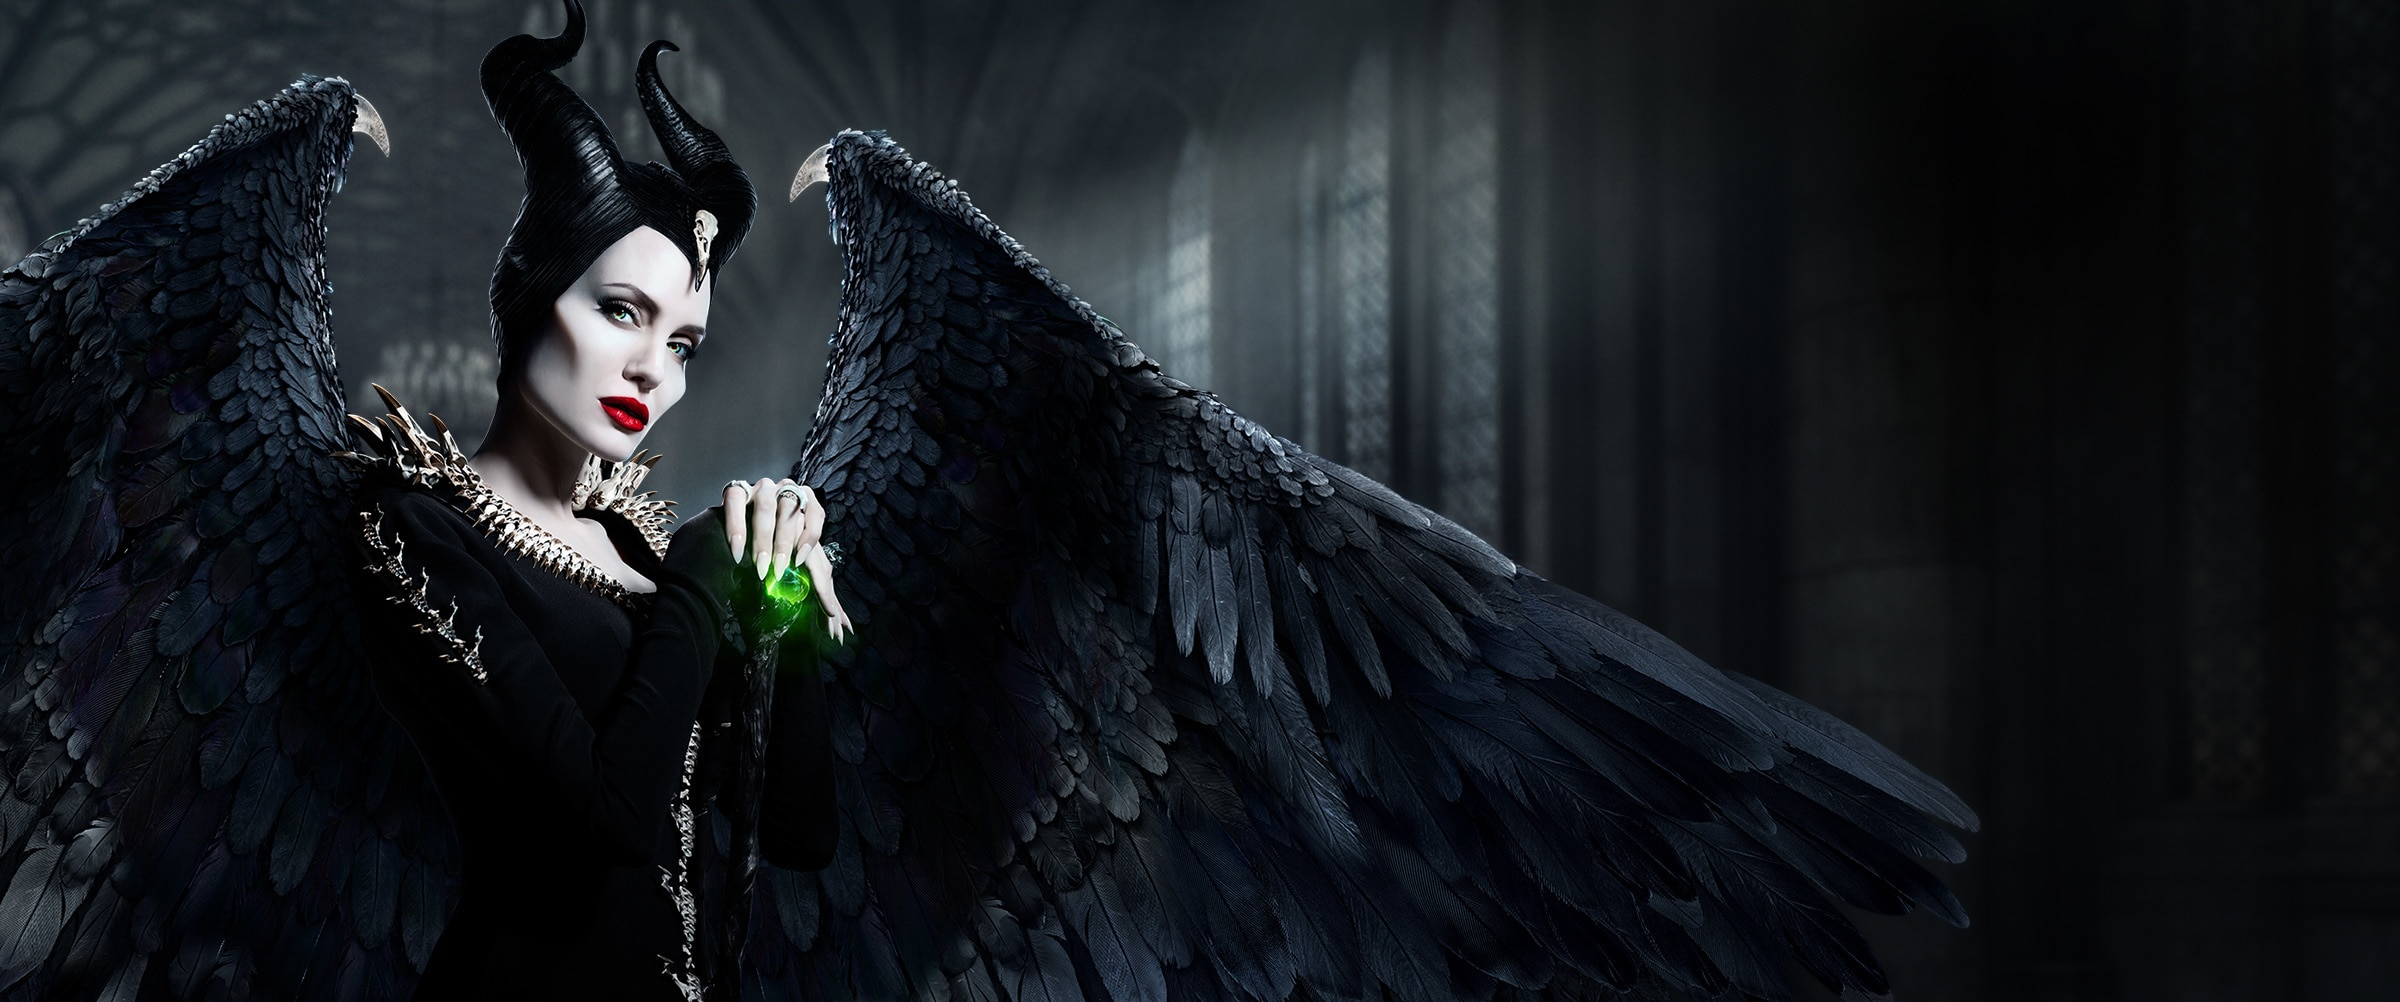 Maleficent: Mistress of Evil (2019) - Homepage Hero - Wings - DISNEYPLUS